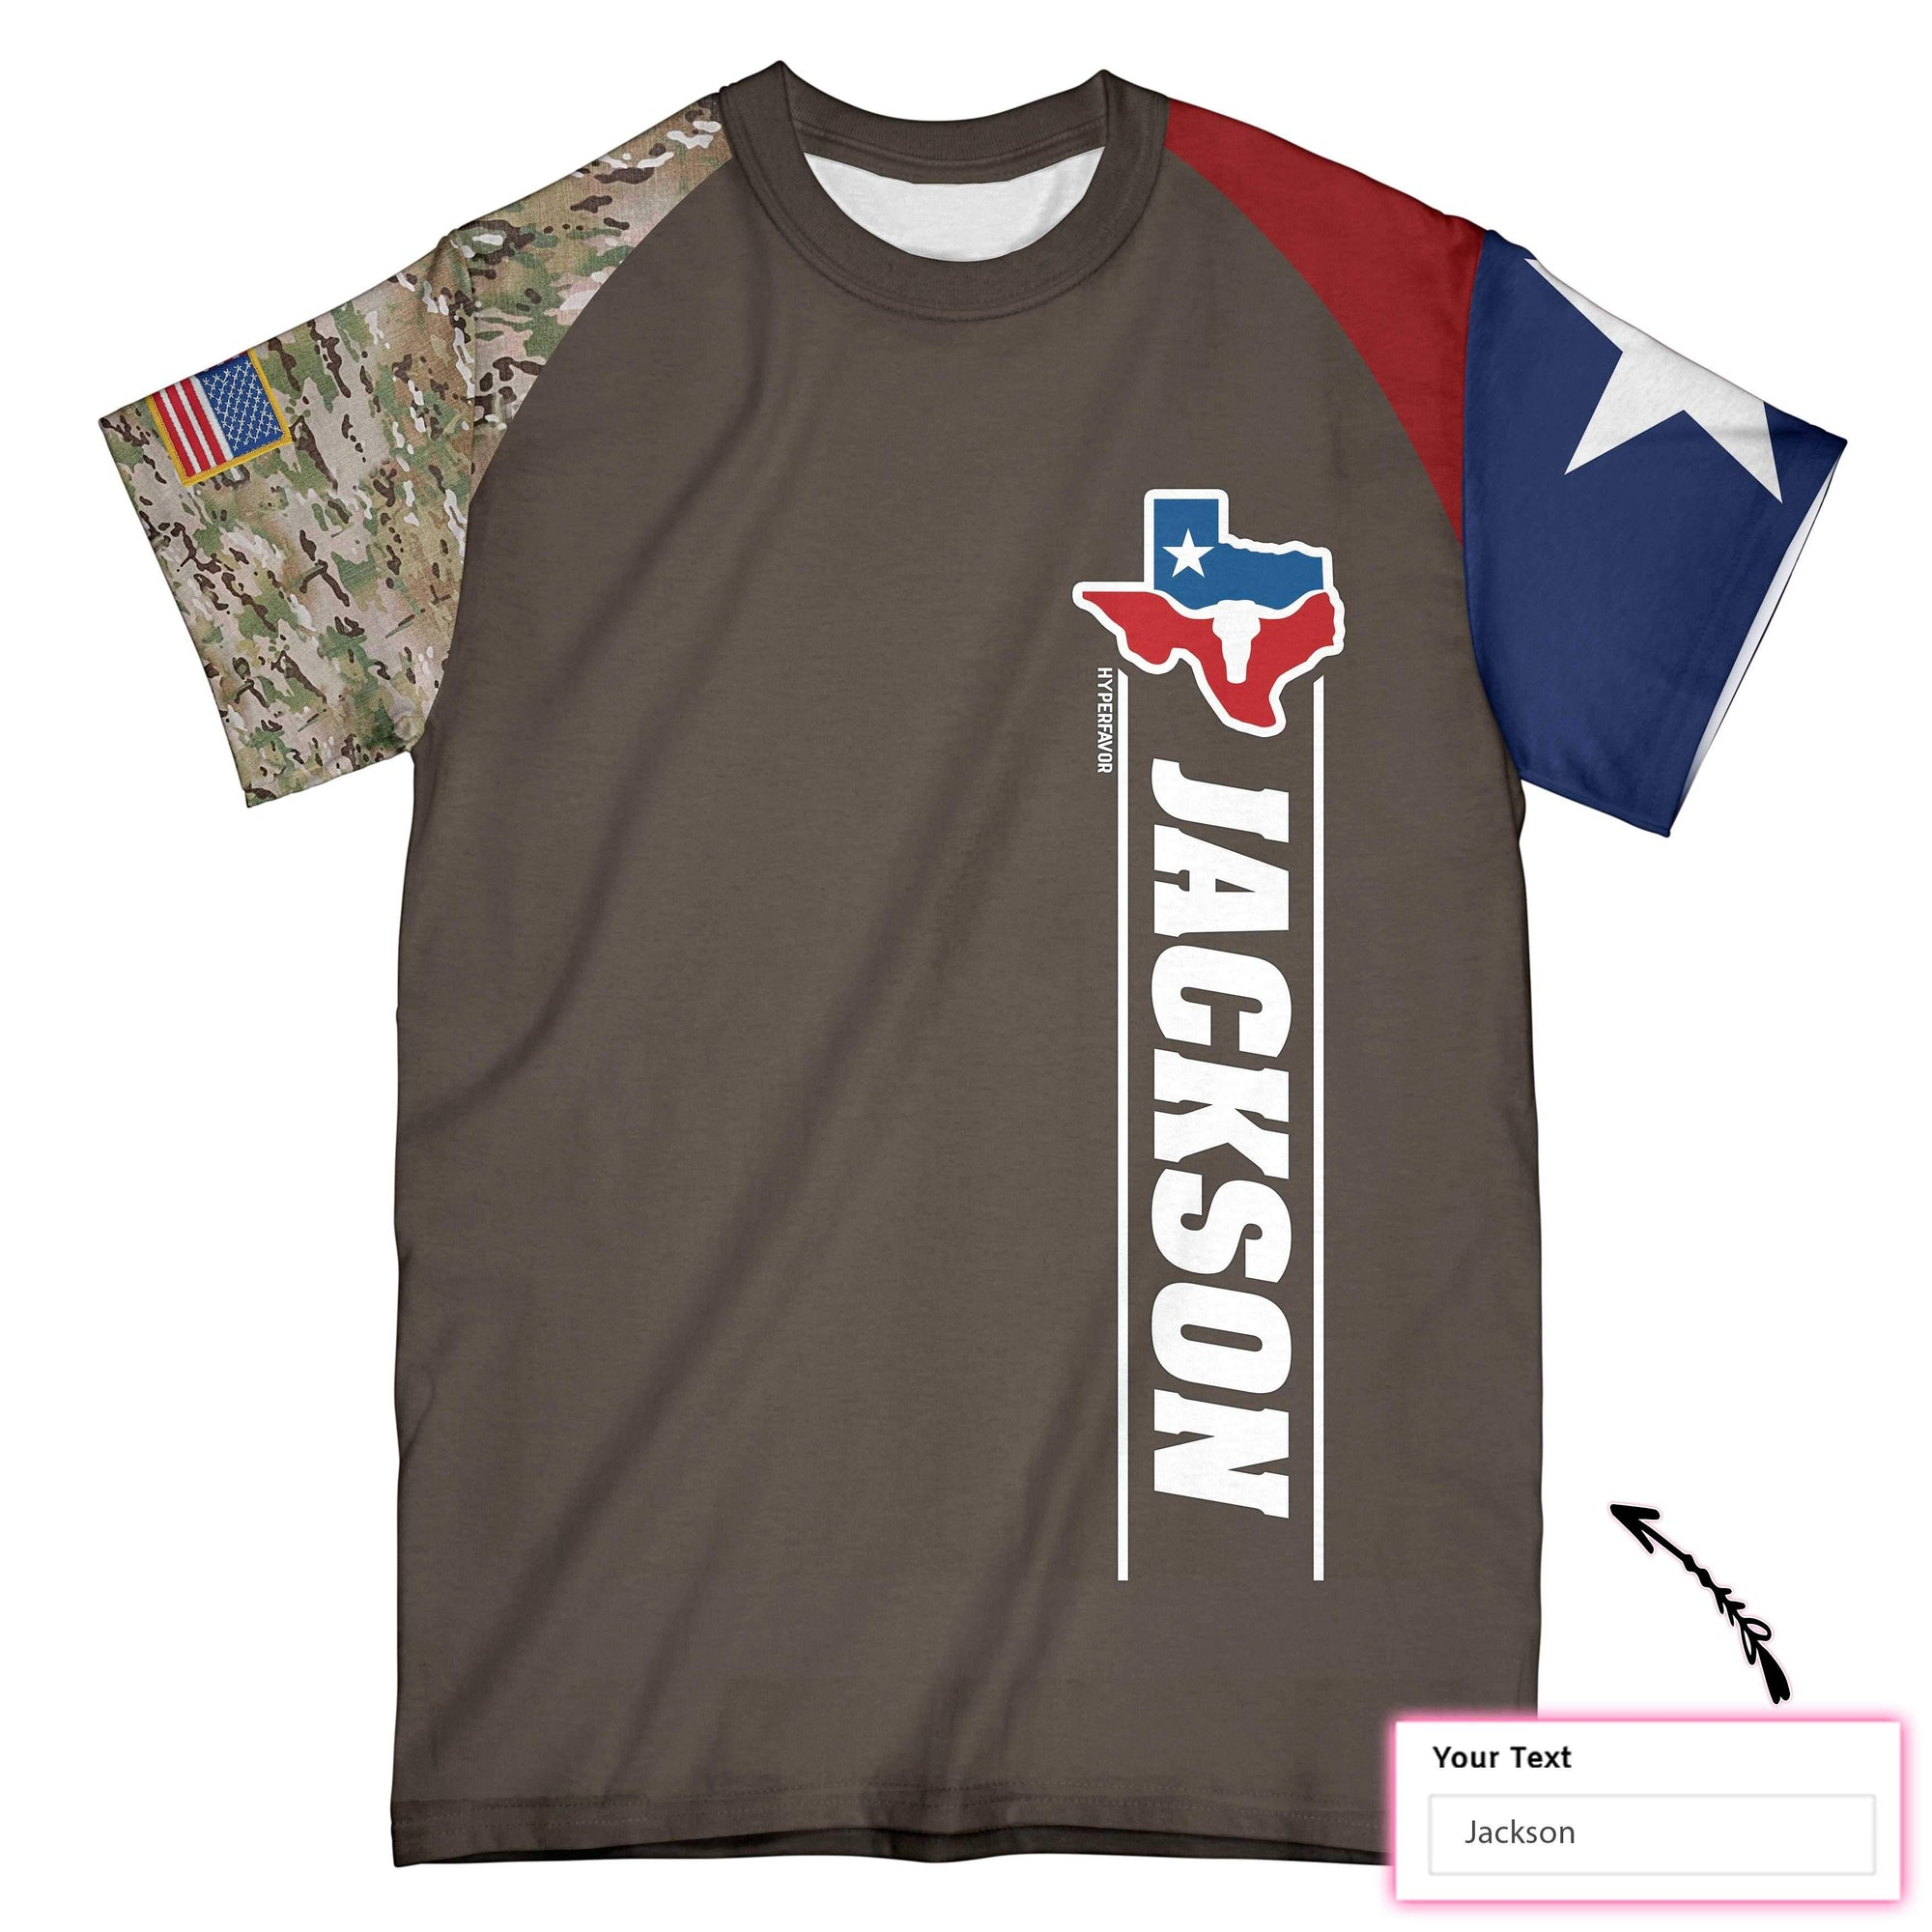 Personalized Dont Mess With Texas Camo Texas V2 EZ20 1301 Custom All Over Print T-Shirt